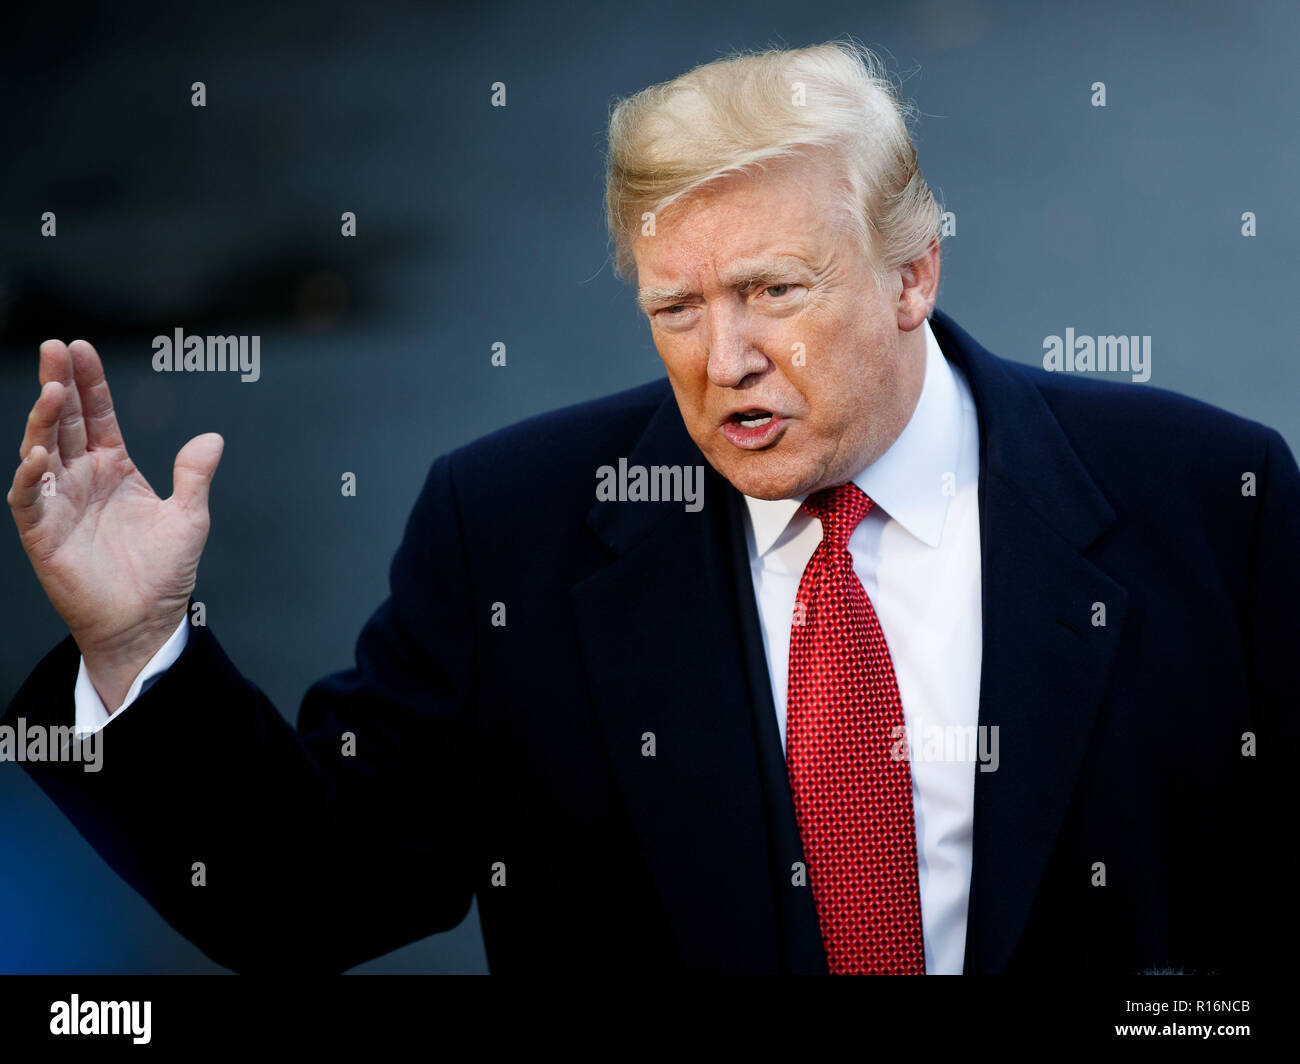 Washington, USA. 9th Nov, 2018. U.S. President Donald Trump speaks to reporters at the White House in Washington, DC, the United States, on Nov. 9, 2018. Trump said here on Friday that the person to replace Nikki Haley as the new ambassador to the United Nations is still under consideration. Credit: Ting Shen/Xinhua/Alamy Live News - Stock Image